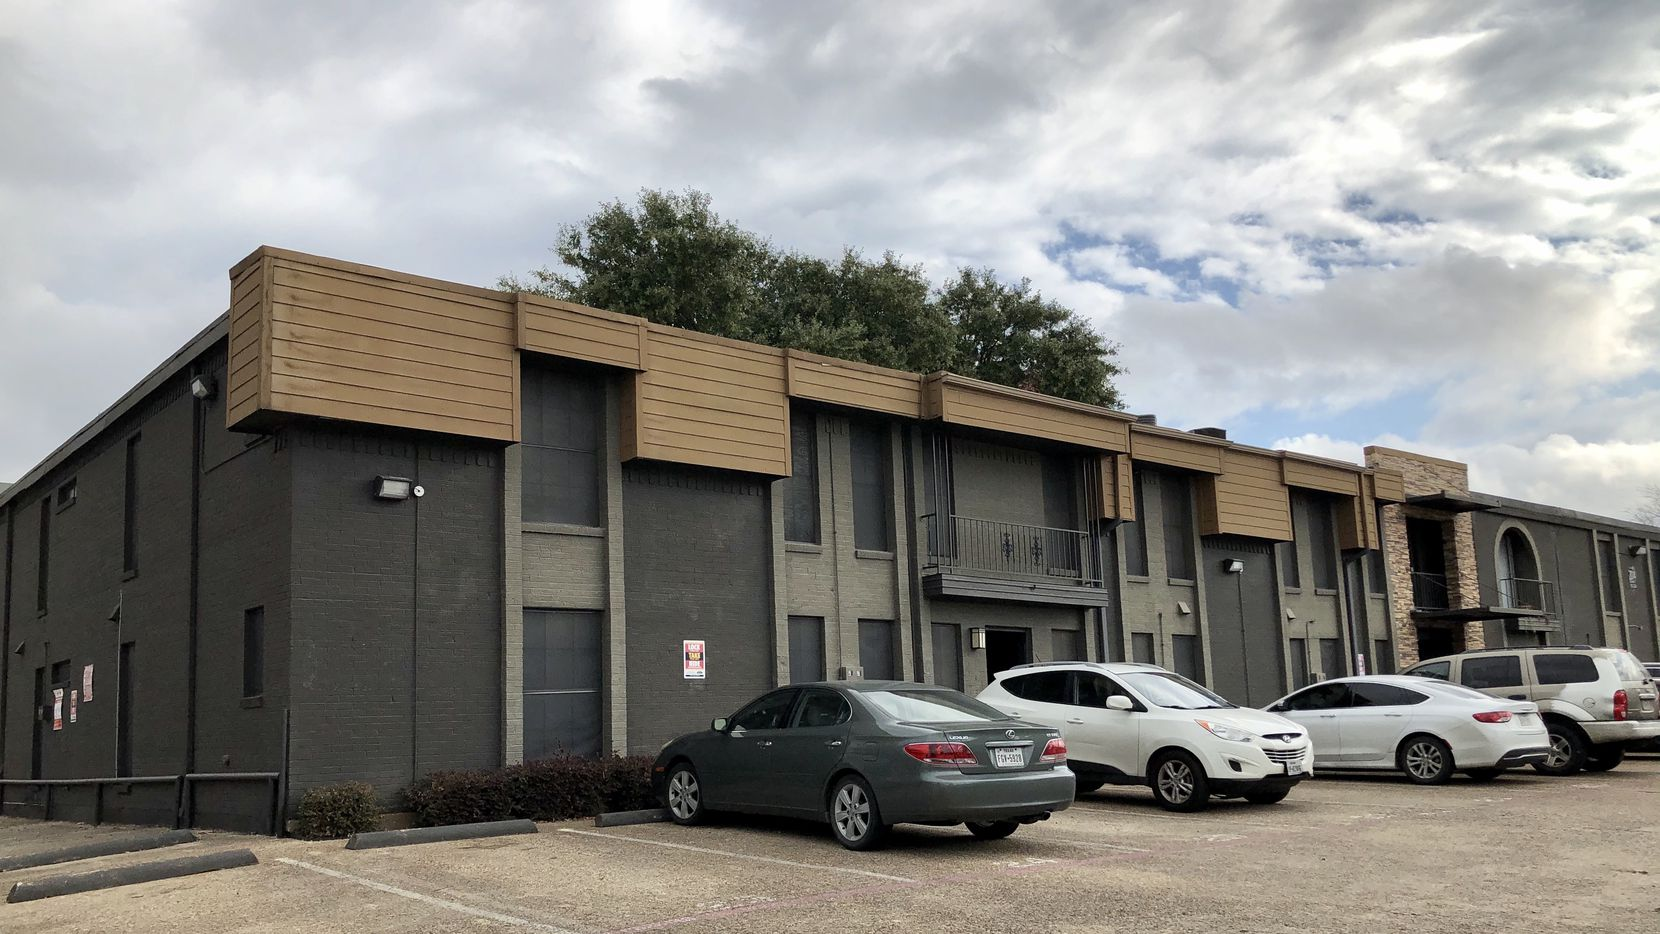 Brooklyn-based Freshwater Group LLC bought the apartments at 2014 Bennett in East Dallas.